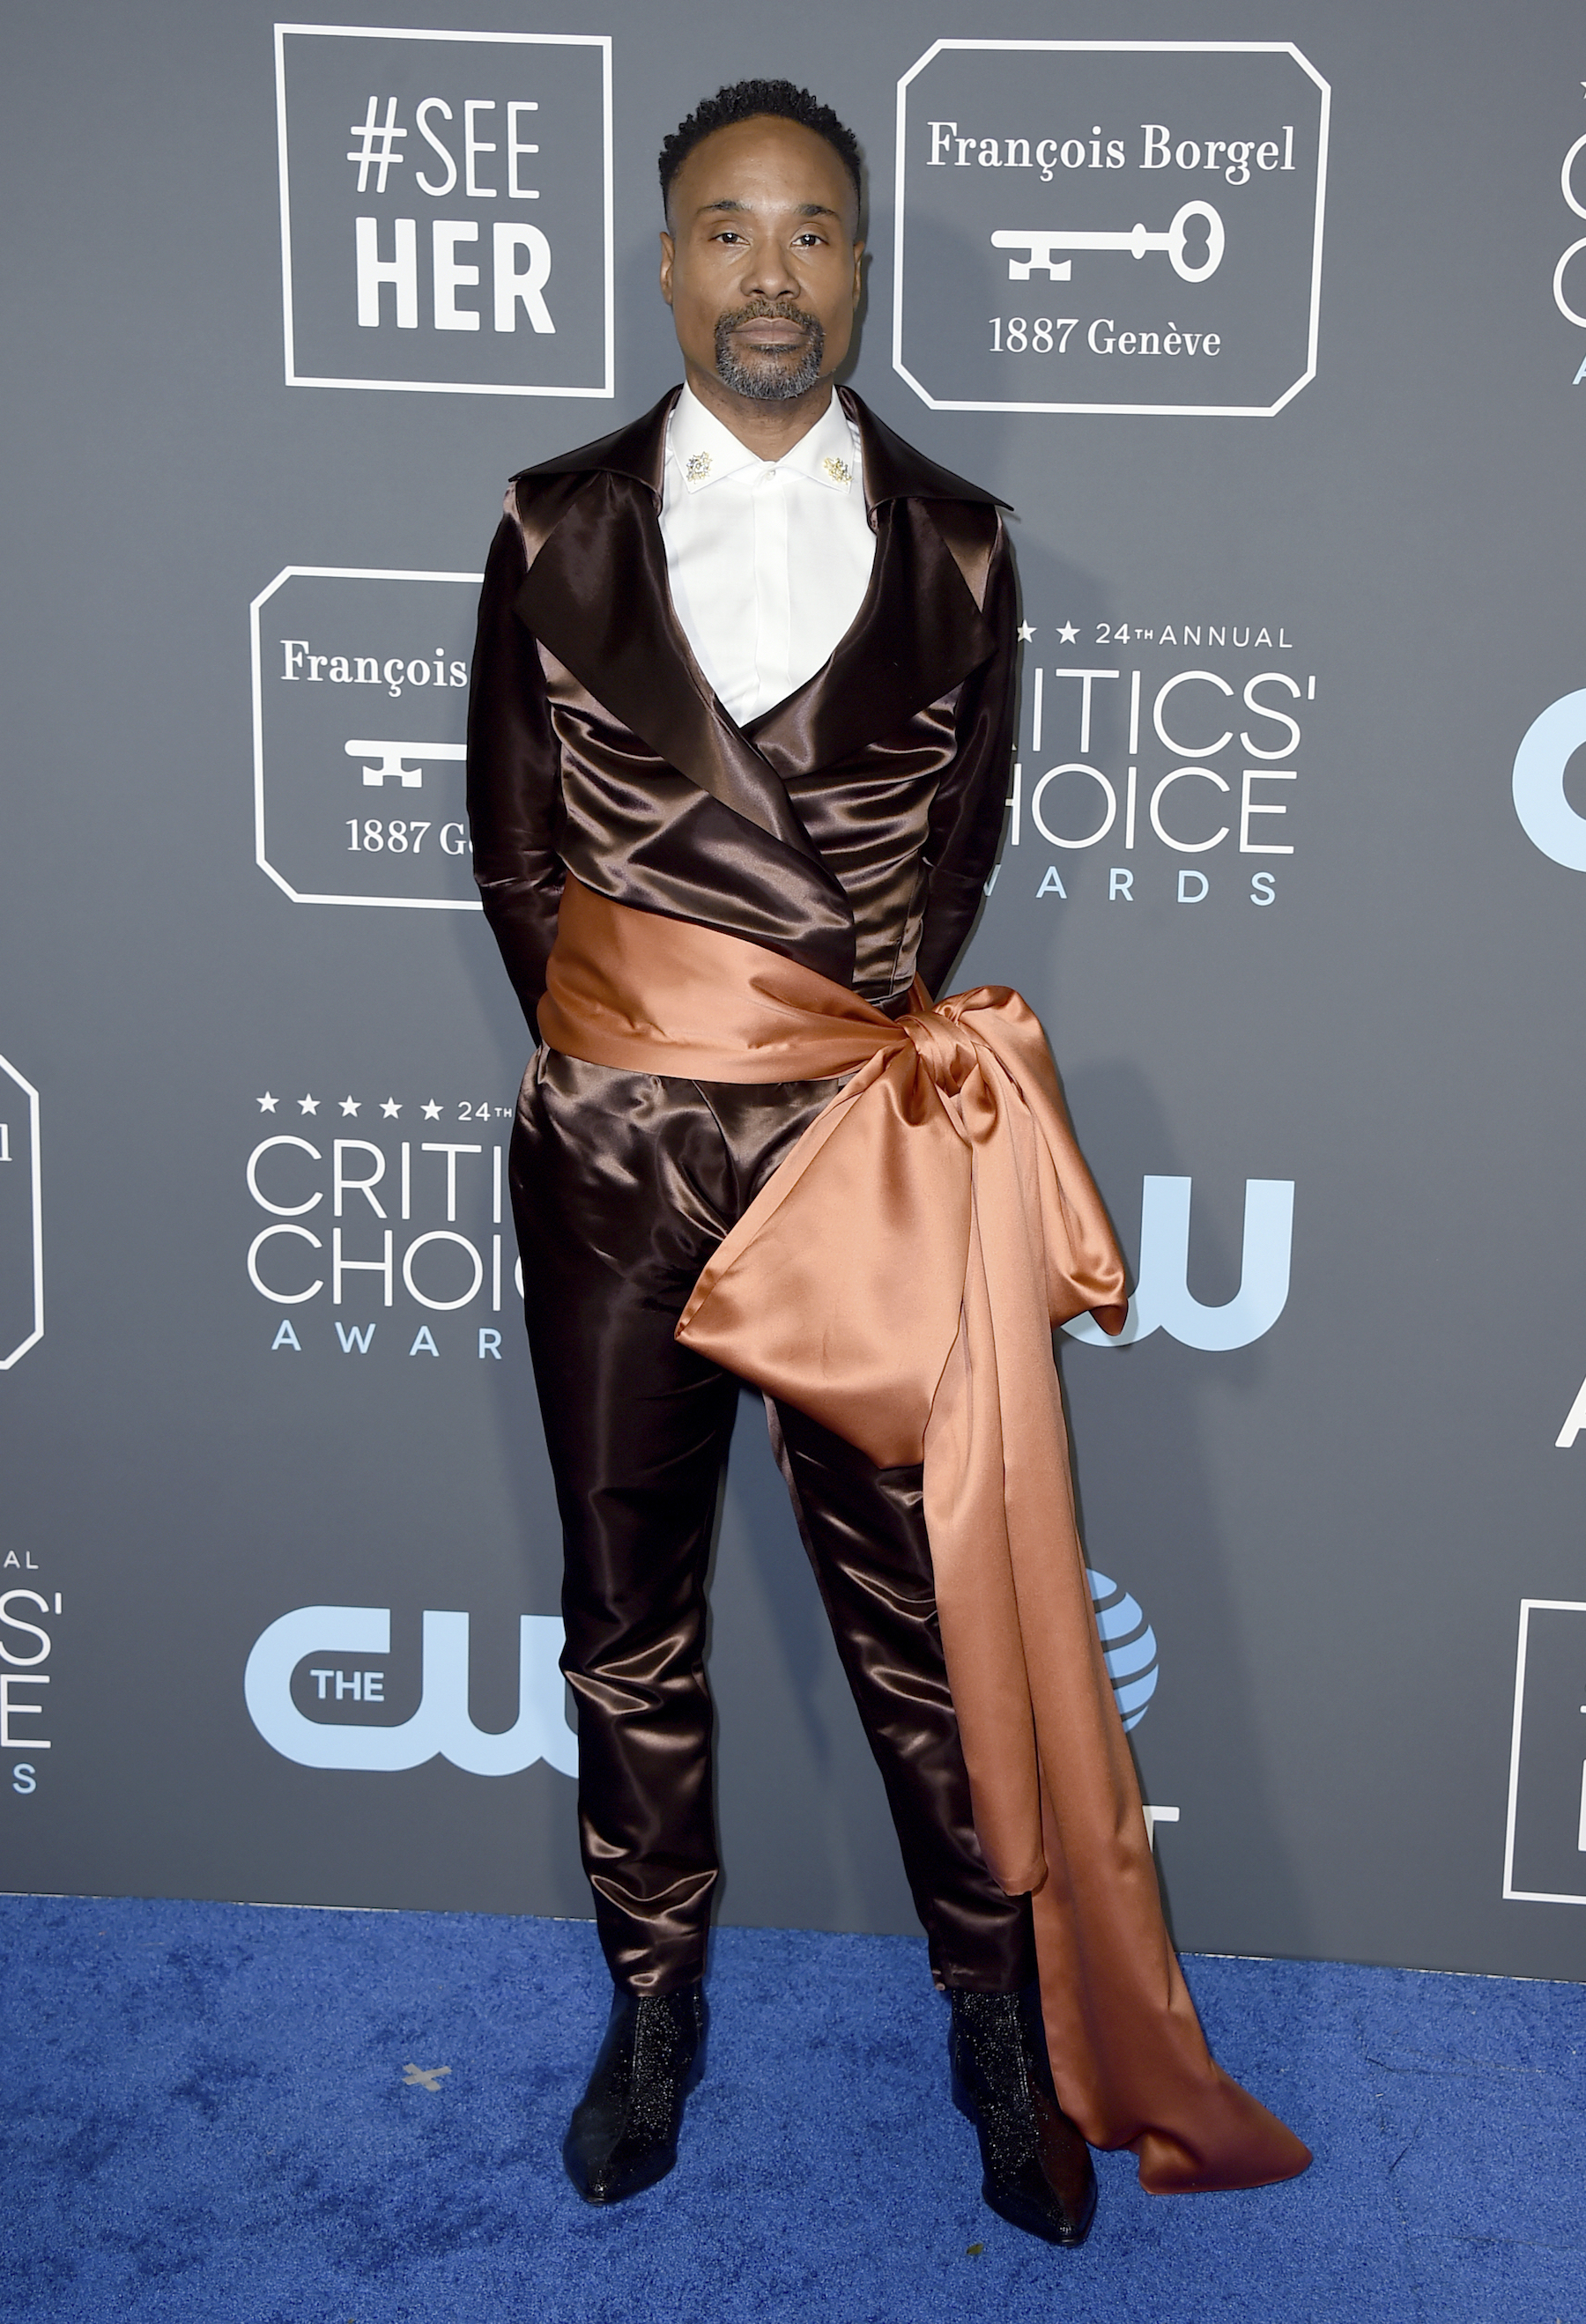 <div class='meta'><div class='origin-logo' data-origin='AP'></div><span class='caption-text' data-credit='Jordan Strauss/Invision/AP'>Billy Porter arrives at the 24th annual Critics' Choice Awards on Sunday, Jan. 13, 2019, at the Barker Hangar in Santa Monica, Calif.</span></div>